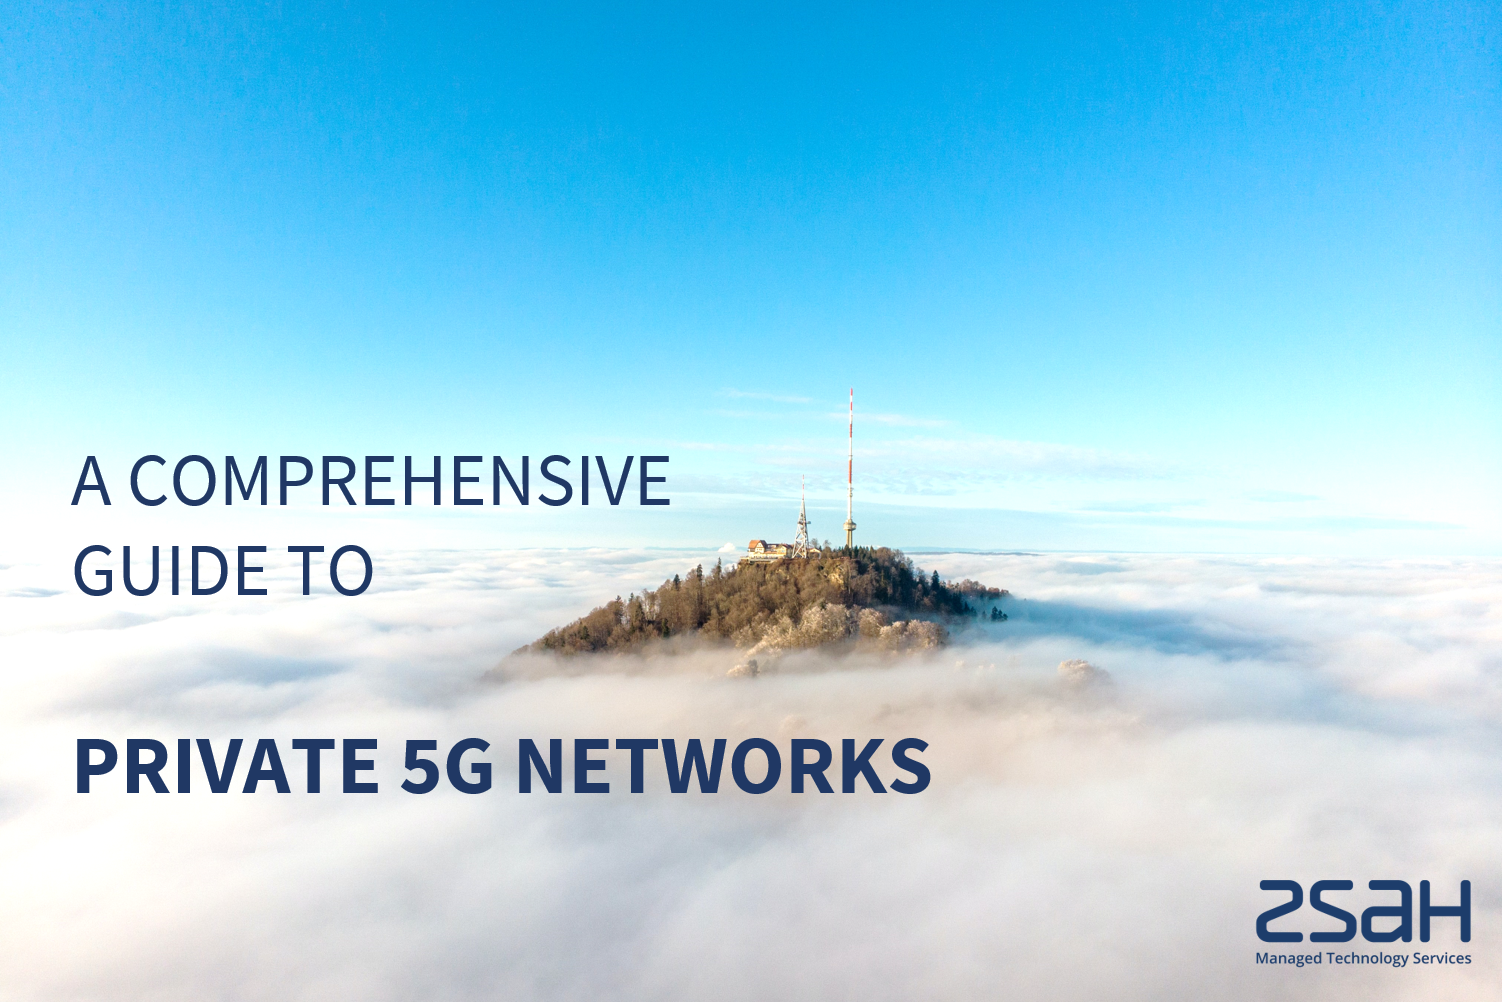 A COMPREHENSIVE GUIDE TO PRIVATE 5G NETWORKS